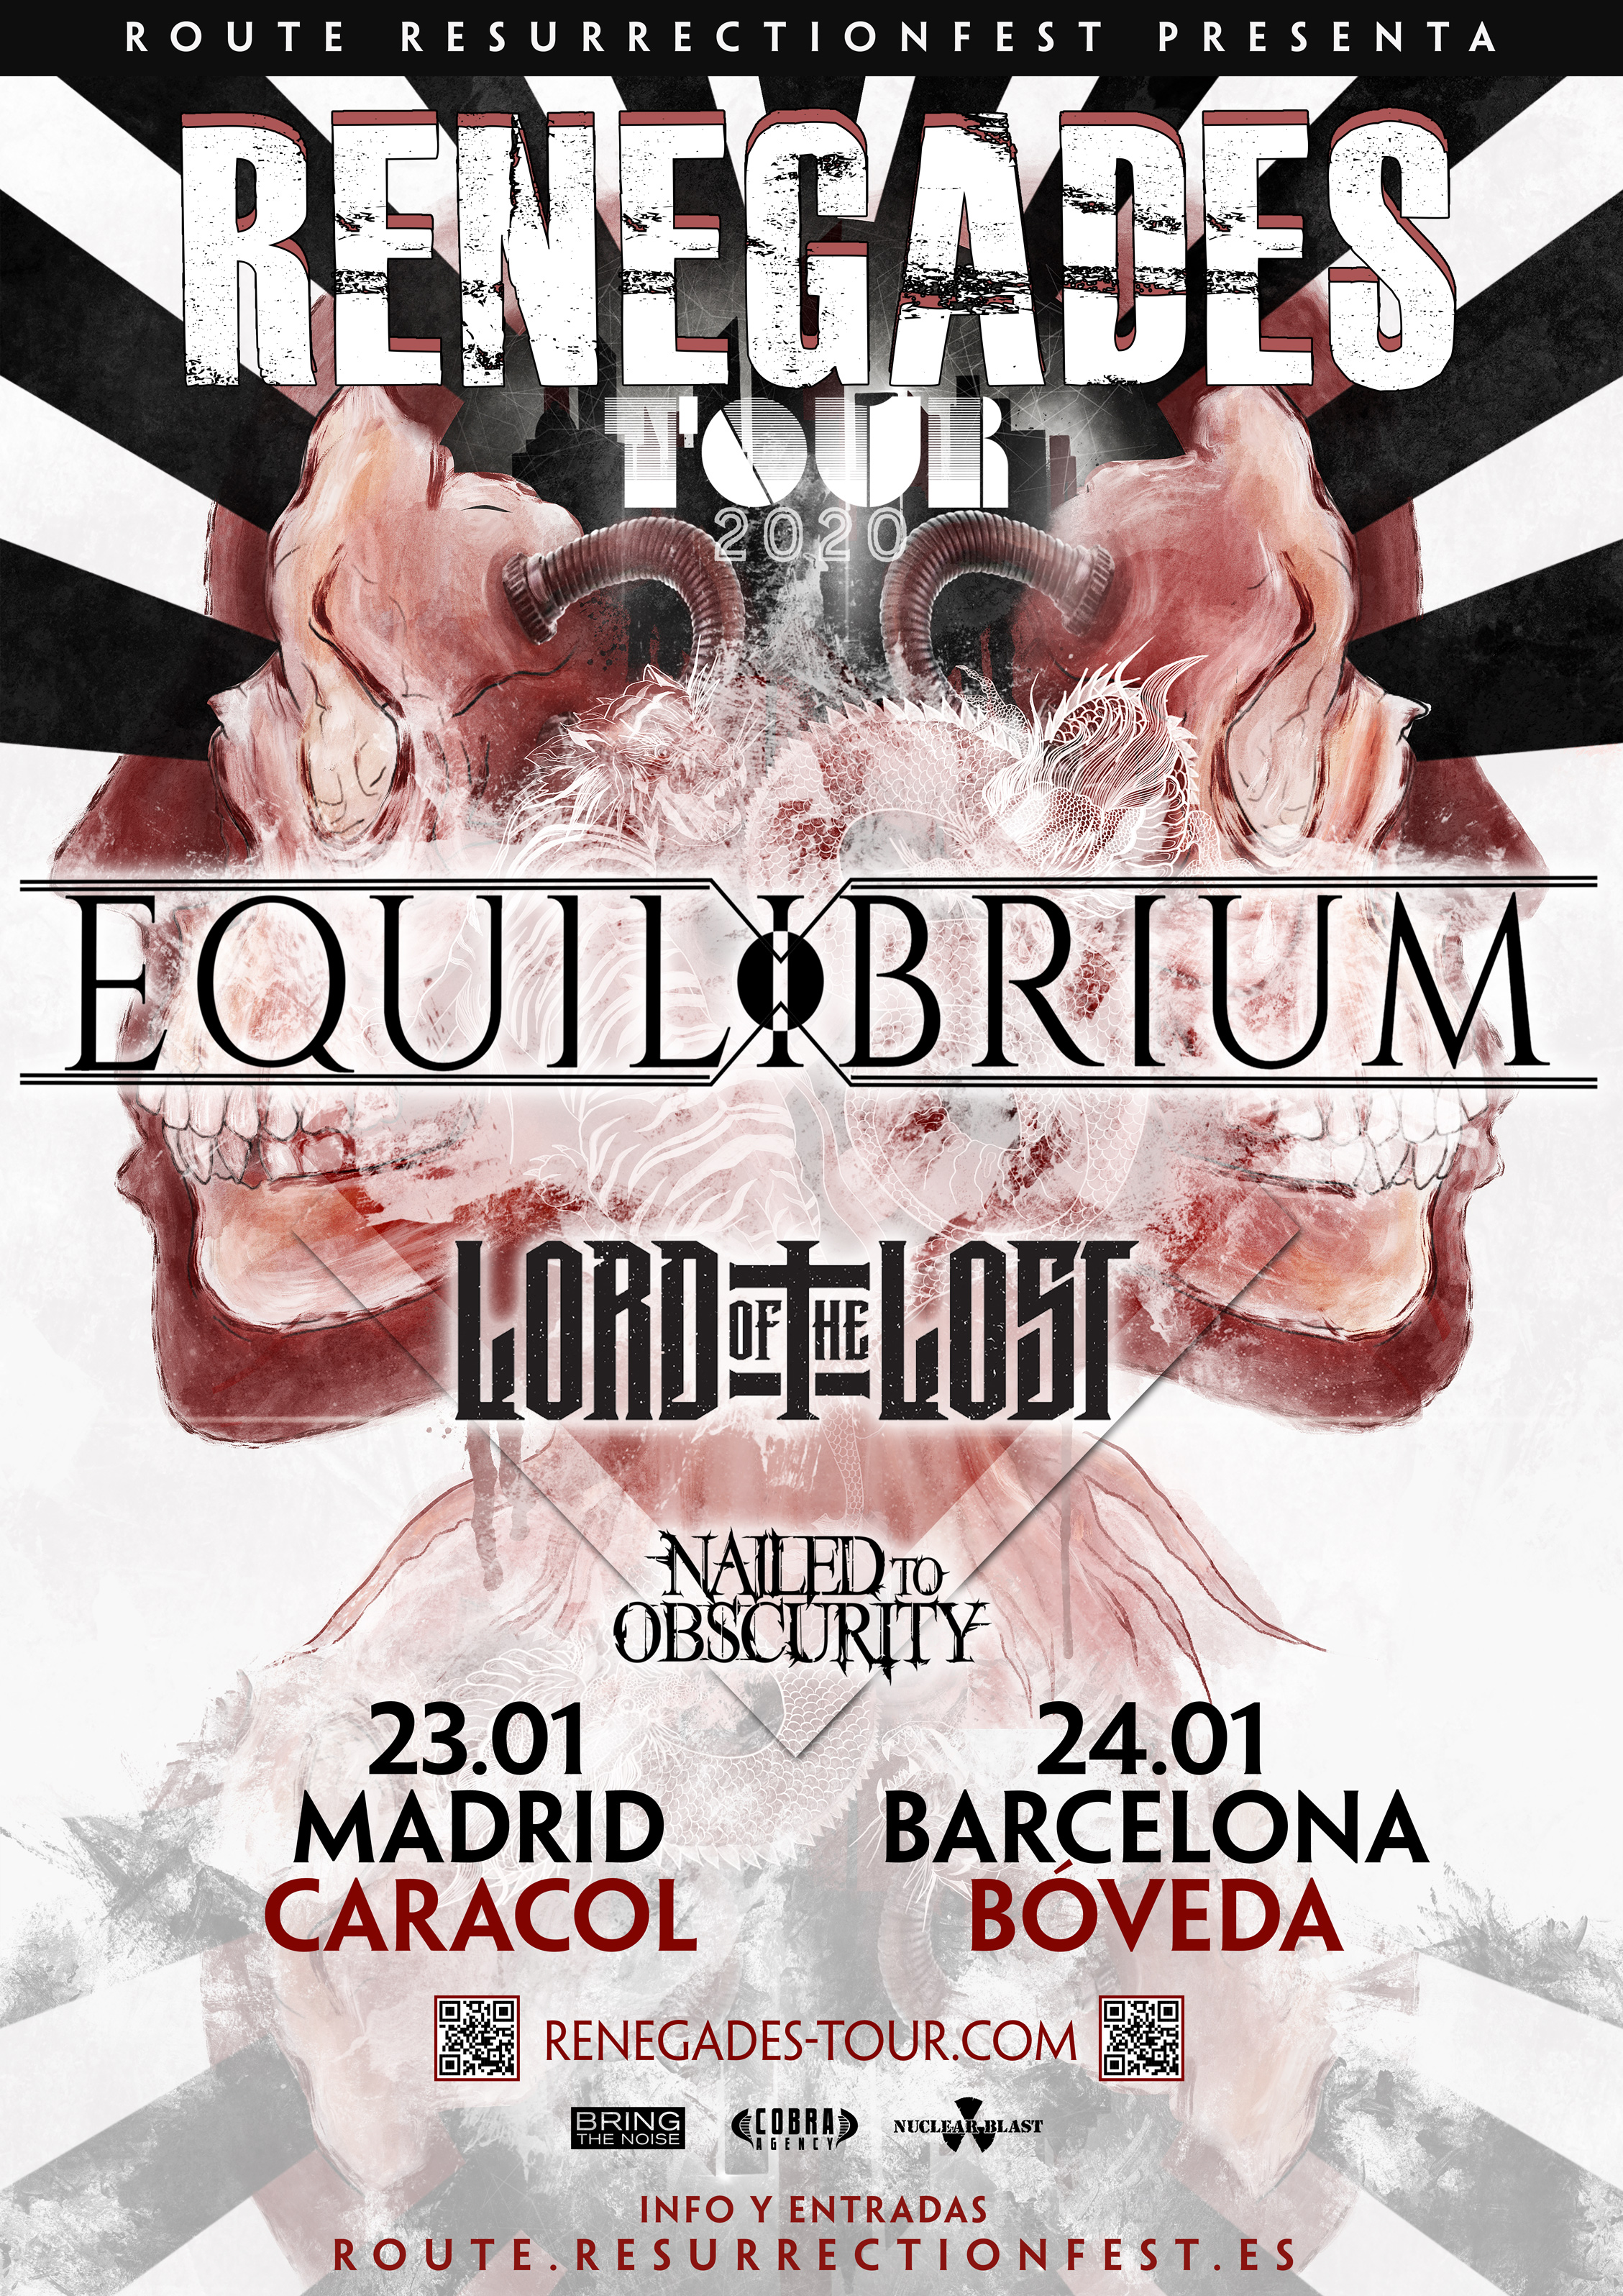 Route Resurrection 2020: Equilibrium (Barcelona)